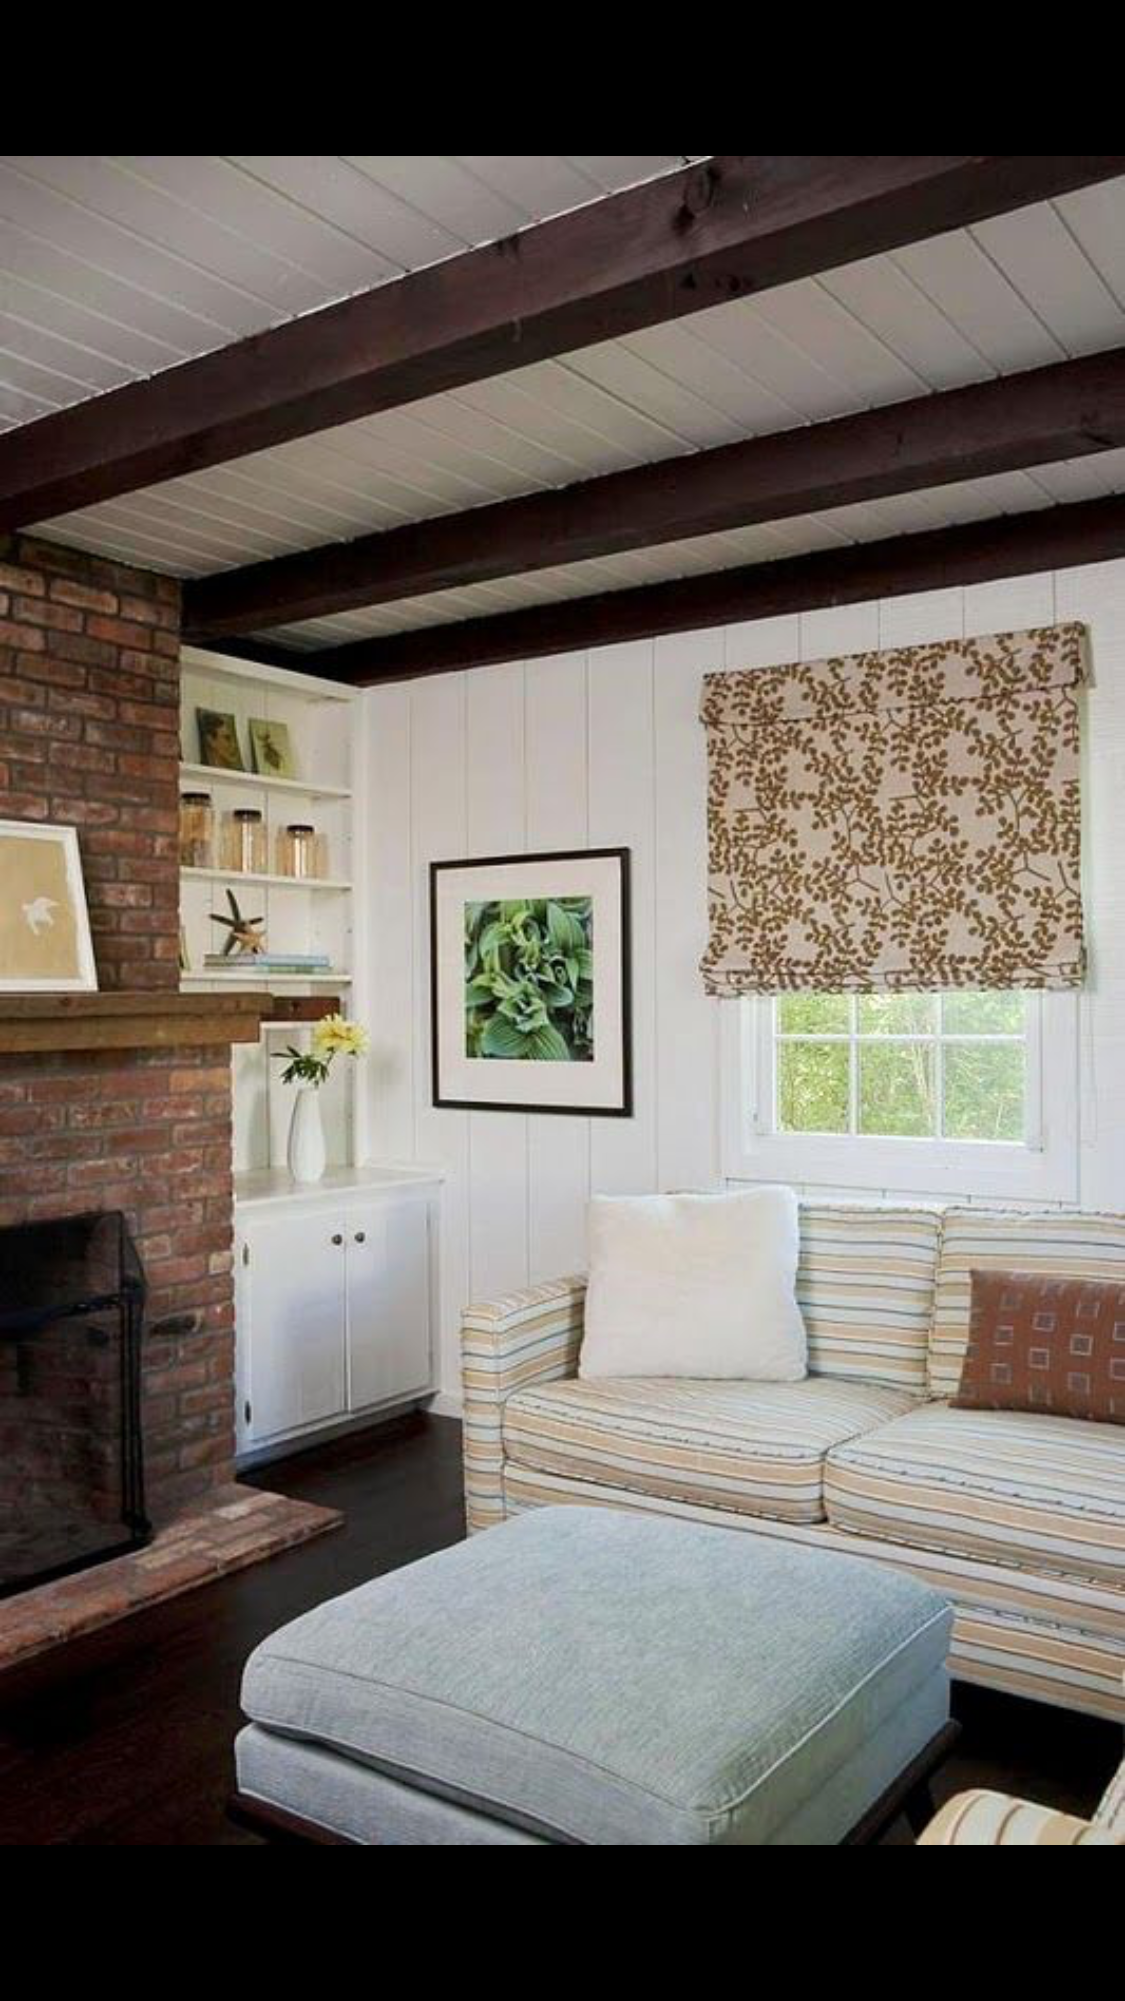 Living Room Walls Wood Panels: Wood Walls Living Room By Beth Lapinski On New House